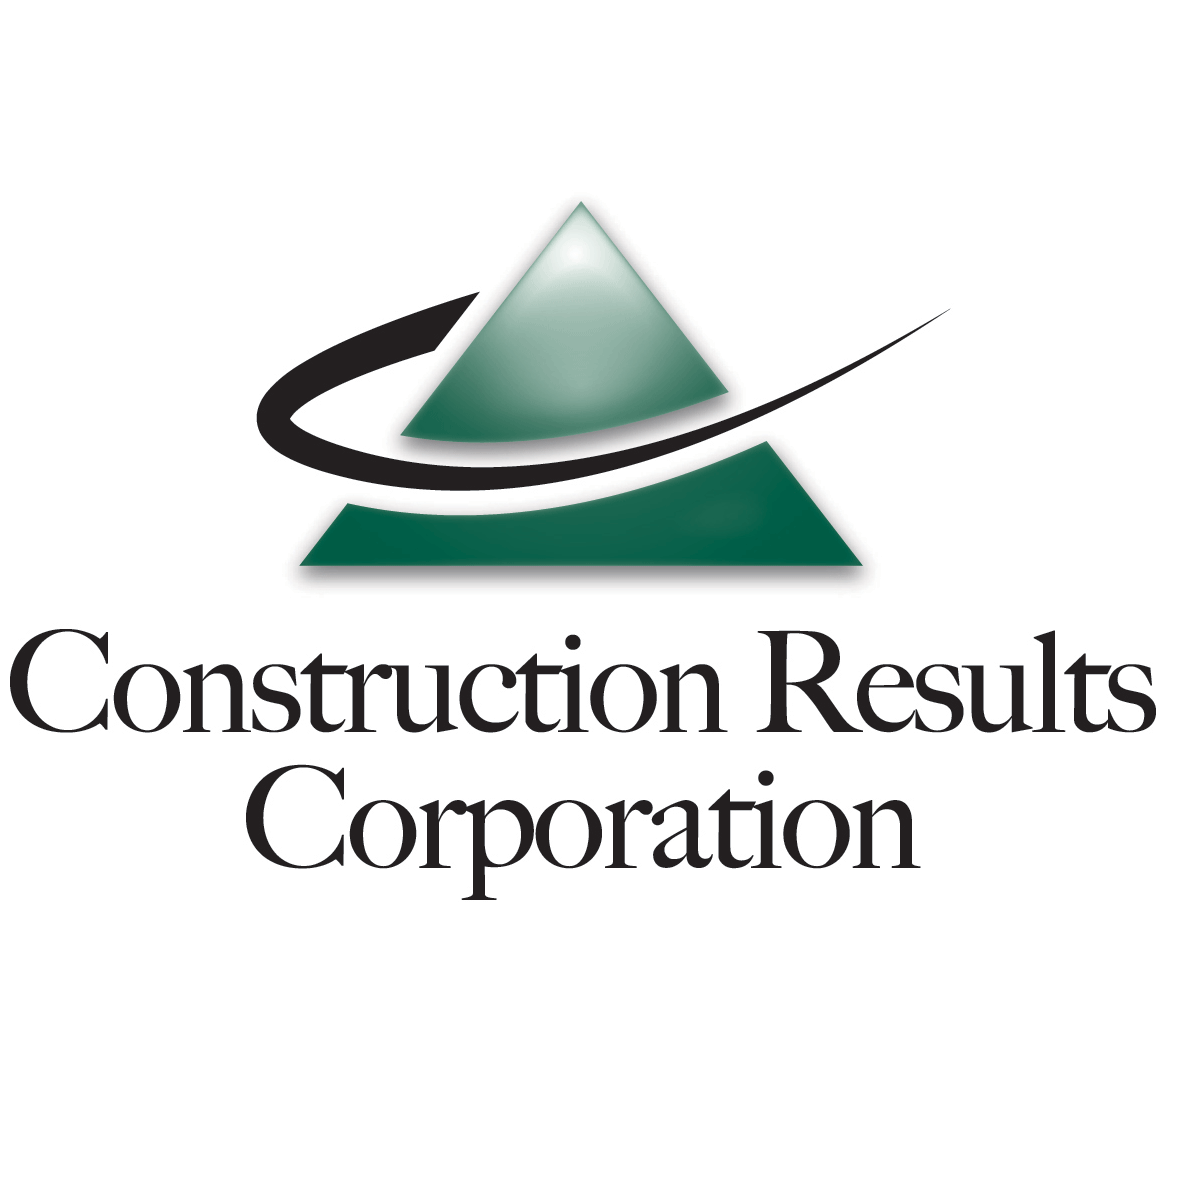 Construction Results Corporation